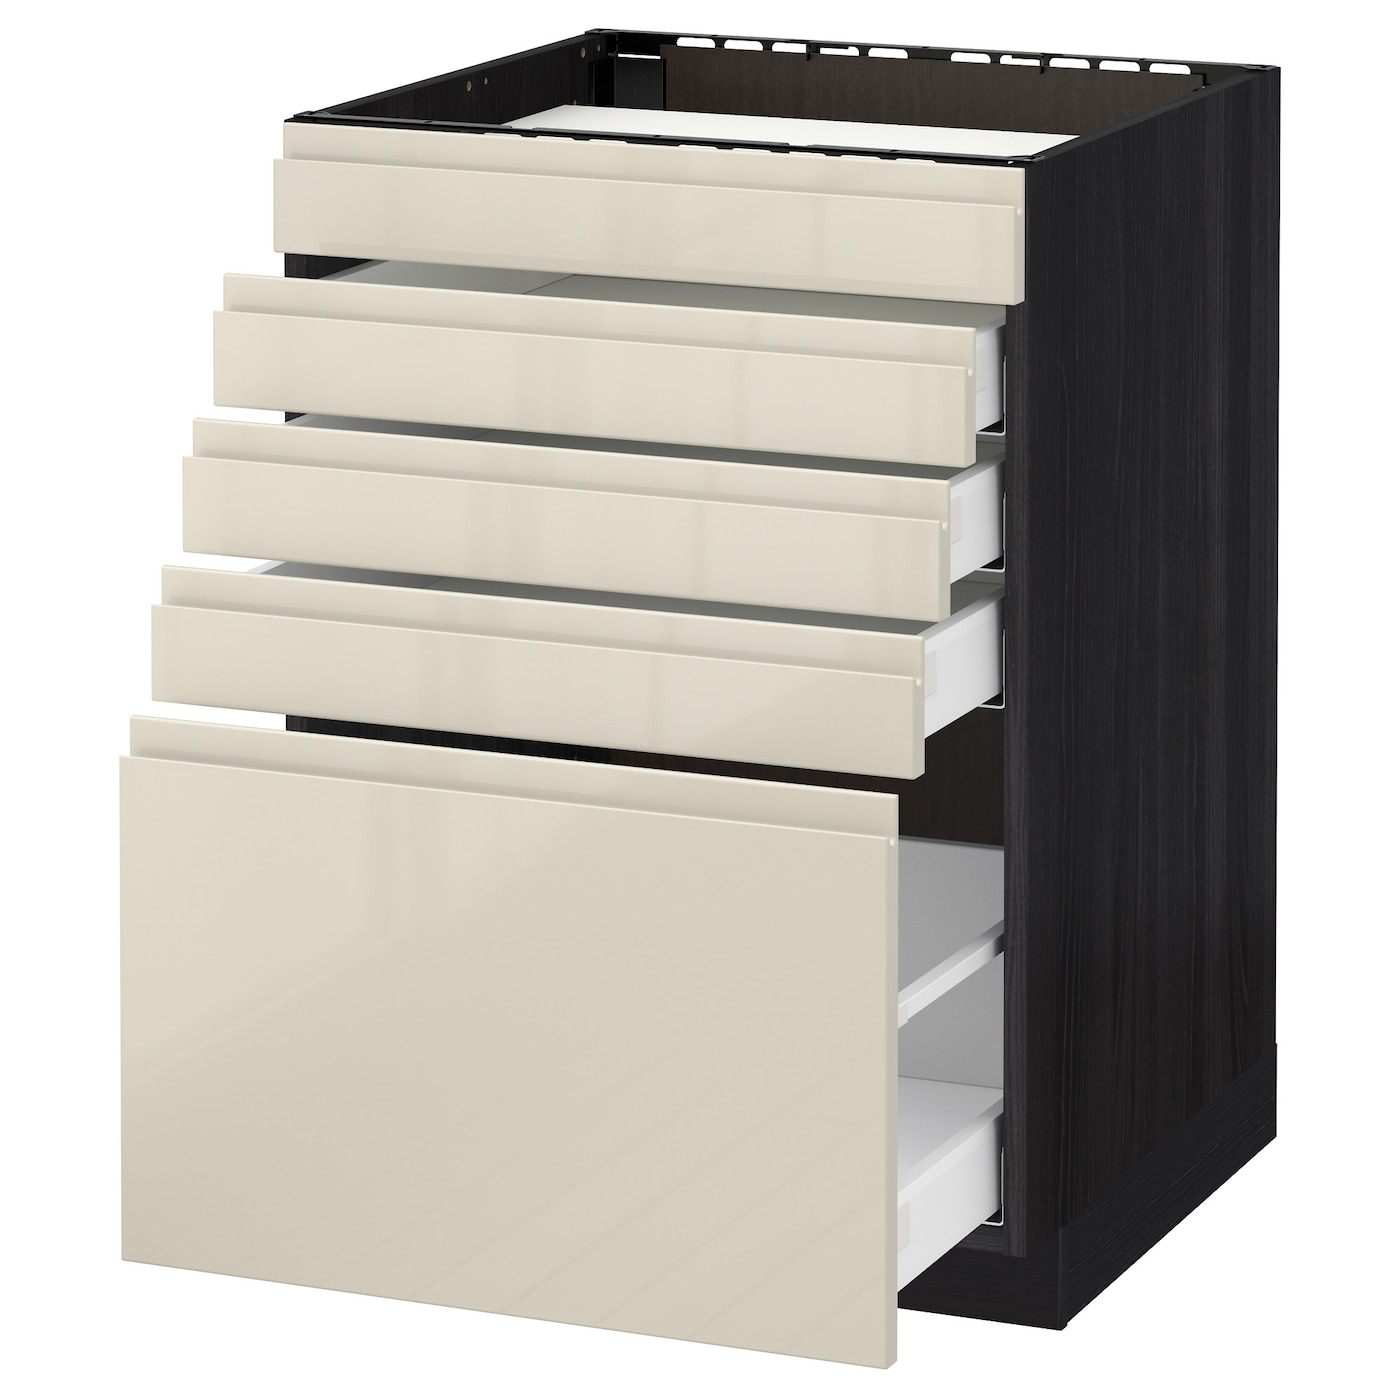 IKEA METOD/MAXIMERA base cab f hob/5 fronts/4 drawers Smooth-running drawers with stop.